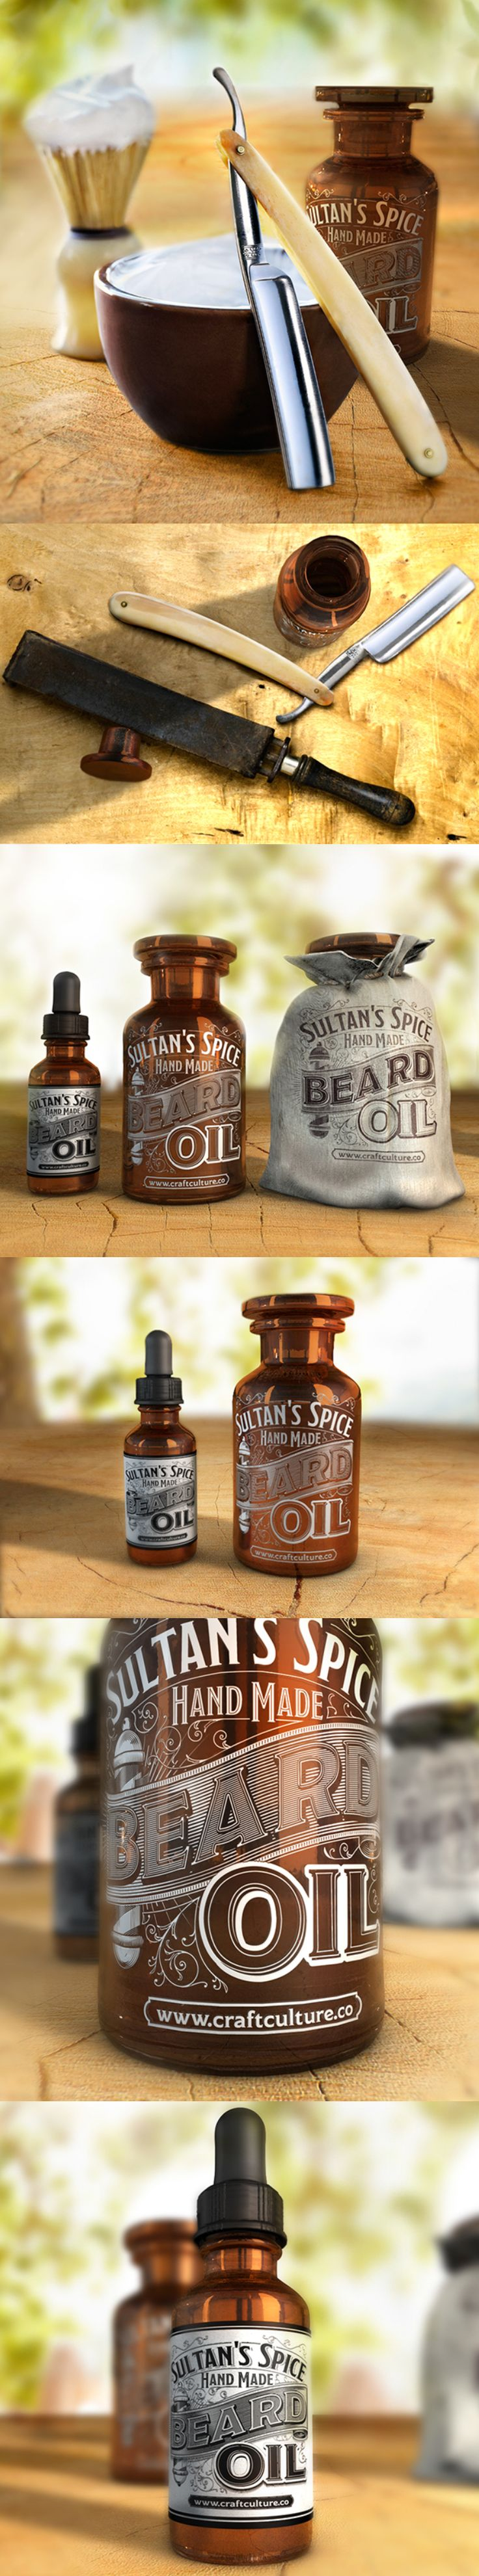 Concept packaging of Craft Culture Co's best-selling Sultan's spice beard conditioning oil by the immensely talented Abraham García. Beard oil is for itchy, dry facial hair and flaky skin. Vegan, palm oil- and cruelty-free. Get it at http://www.craftculture.co/product/sultans-spice-beard-softening-oil/